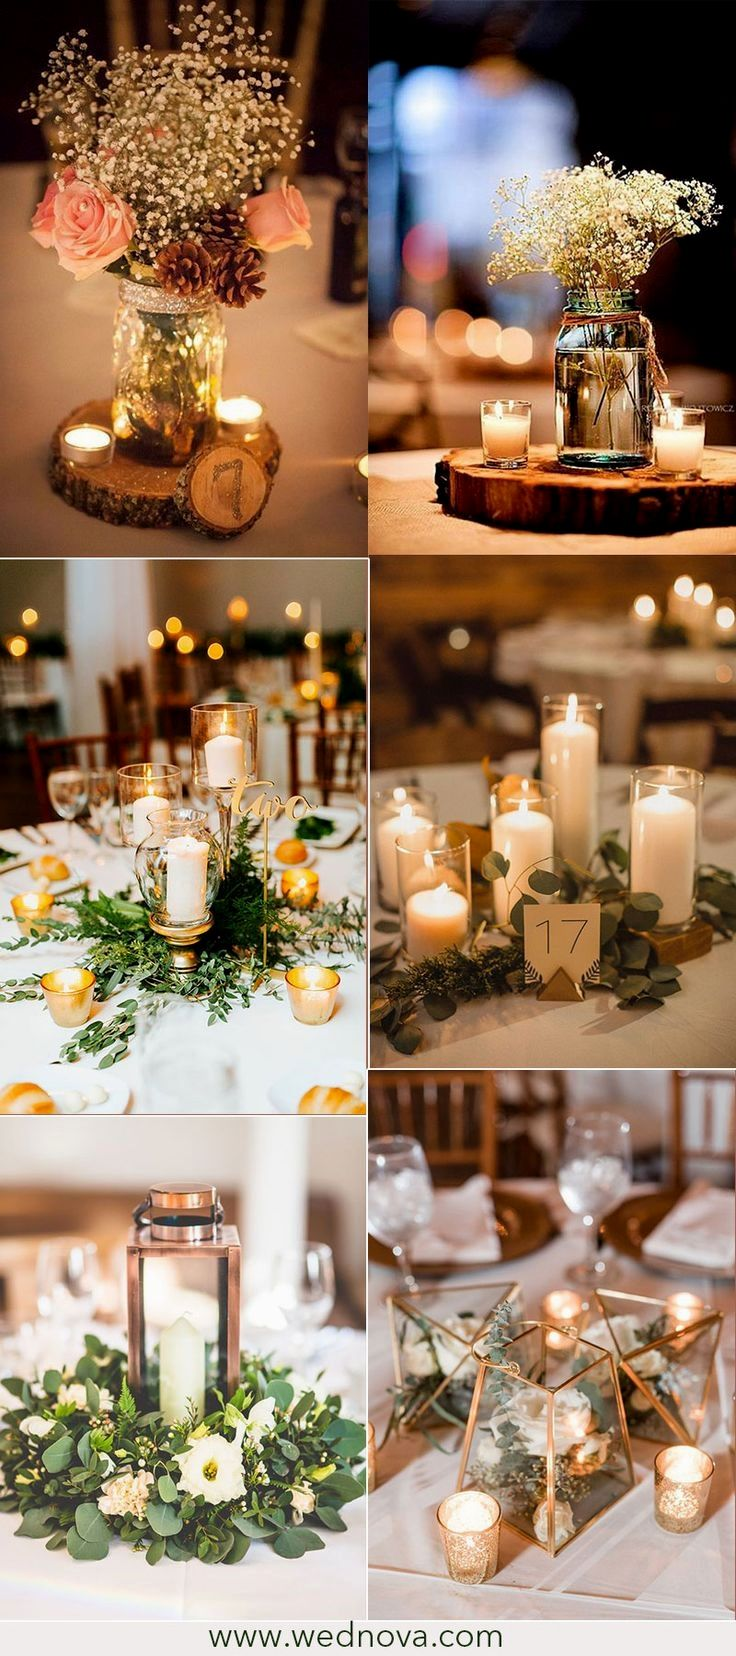 Rustic Wedding Decoration In 2020 Green Wedding Decorations Wedding Decor Elegant Rustic Wedding Centerpieces